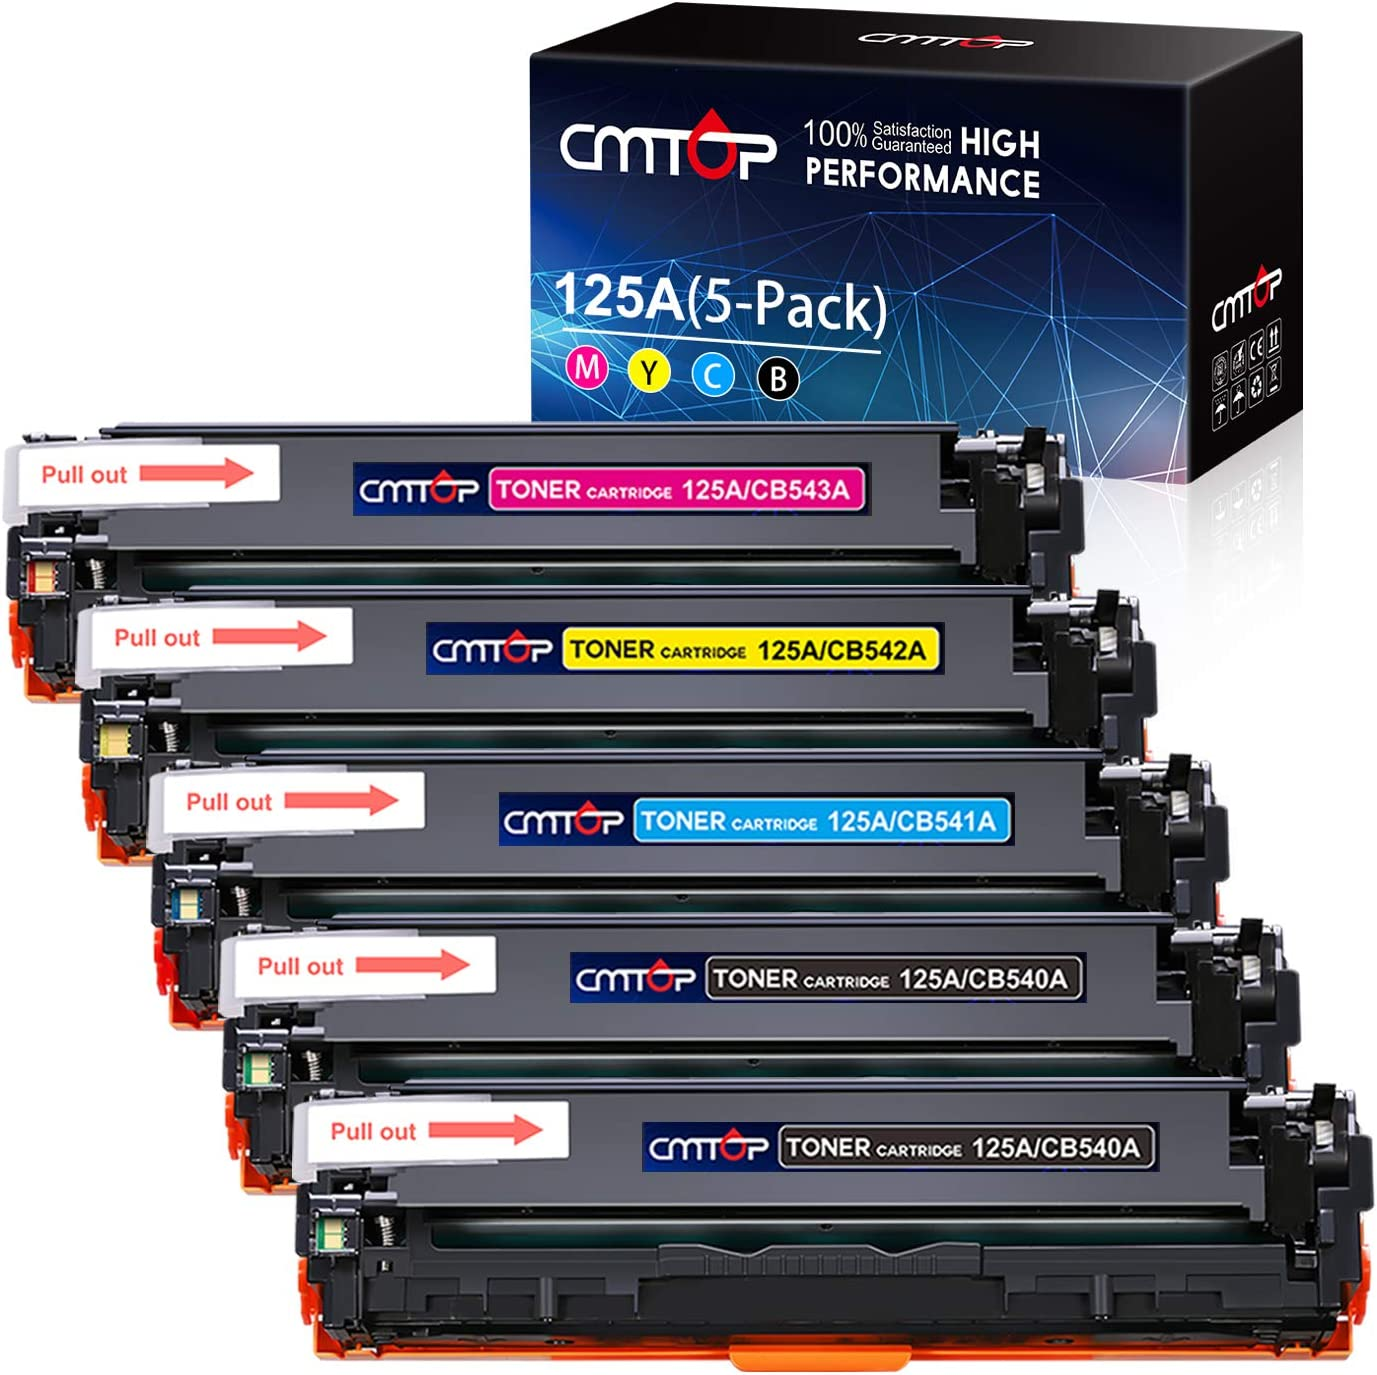 CMTOP 125A Remanufactured Replacement for HP125A CB540A CB541A CB542A CB543A Toner Cartridge, for HP Color Laserjet CM1312 CM1312nfi CP1215 CP1515n CP1518ni, 5-Pack (2 Black 1 Cyan 1 Magenta 1 Yellow)